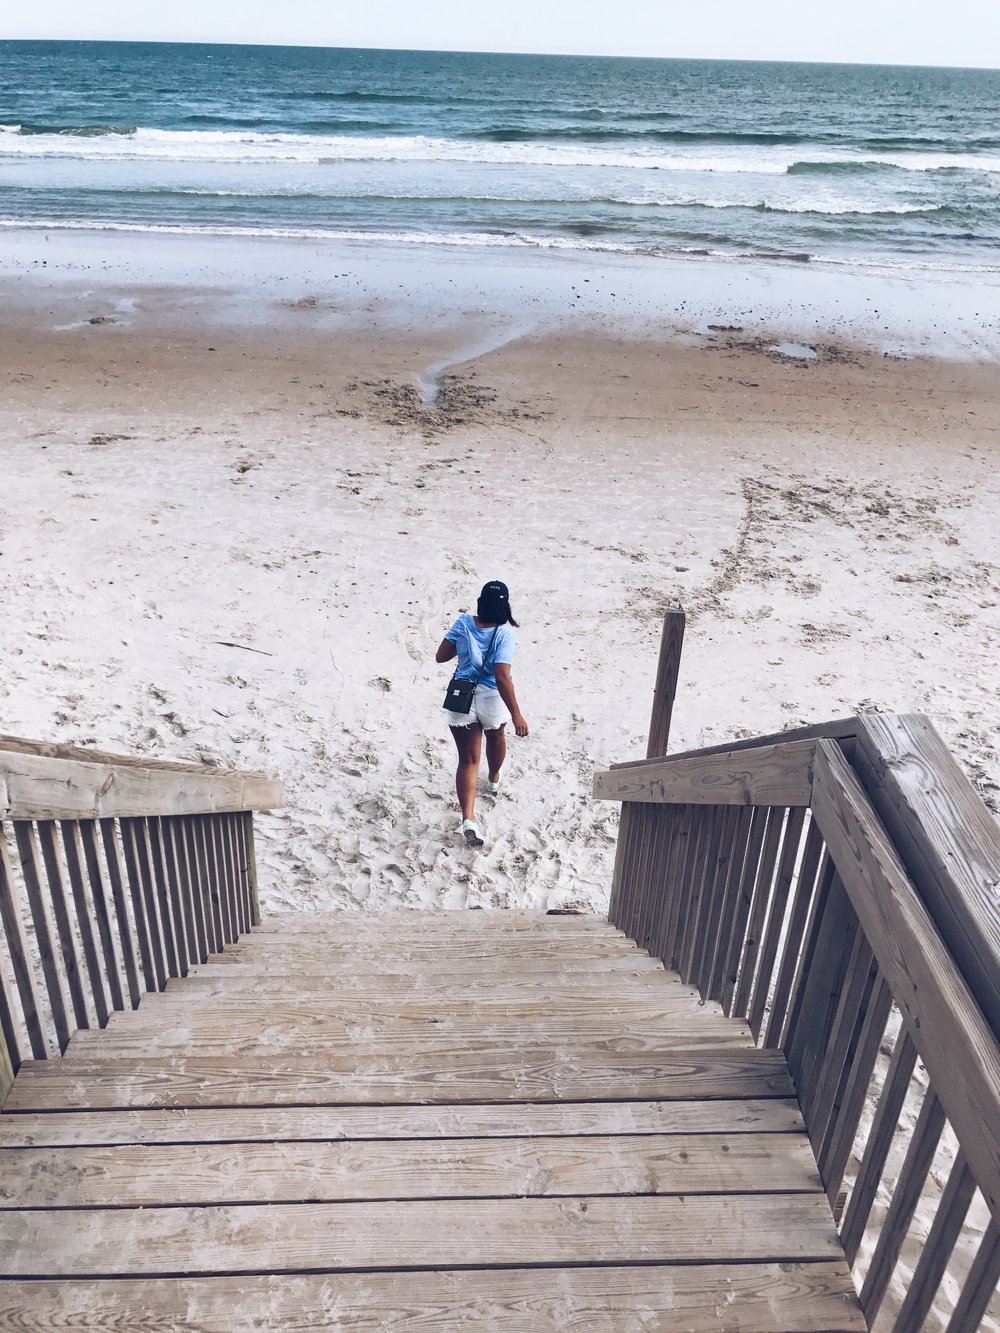 11-travel-diary-snapshots-fashion-blog-robinson-style-topsail-island-north-carolina-beach.JPG.JPG